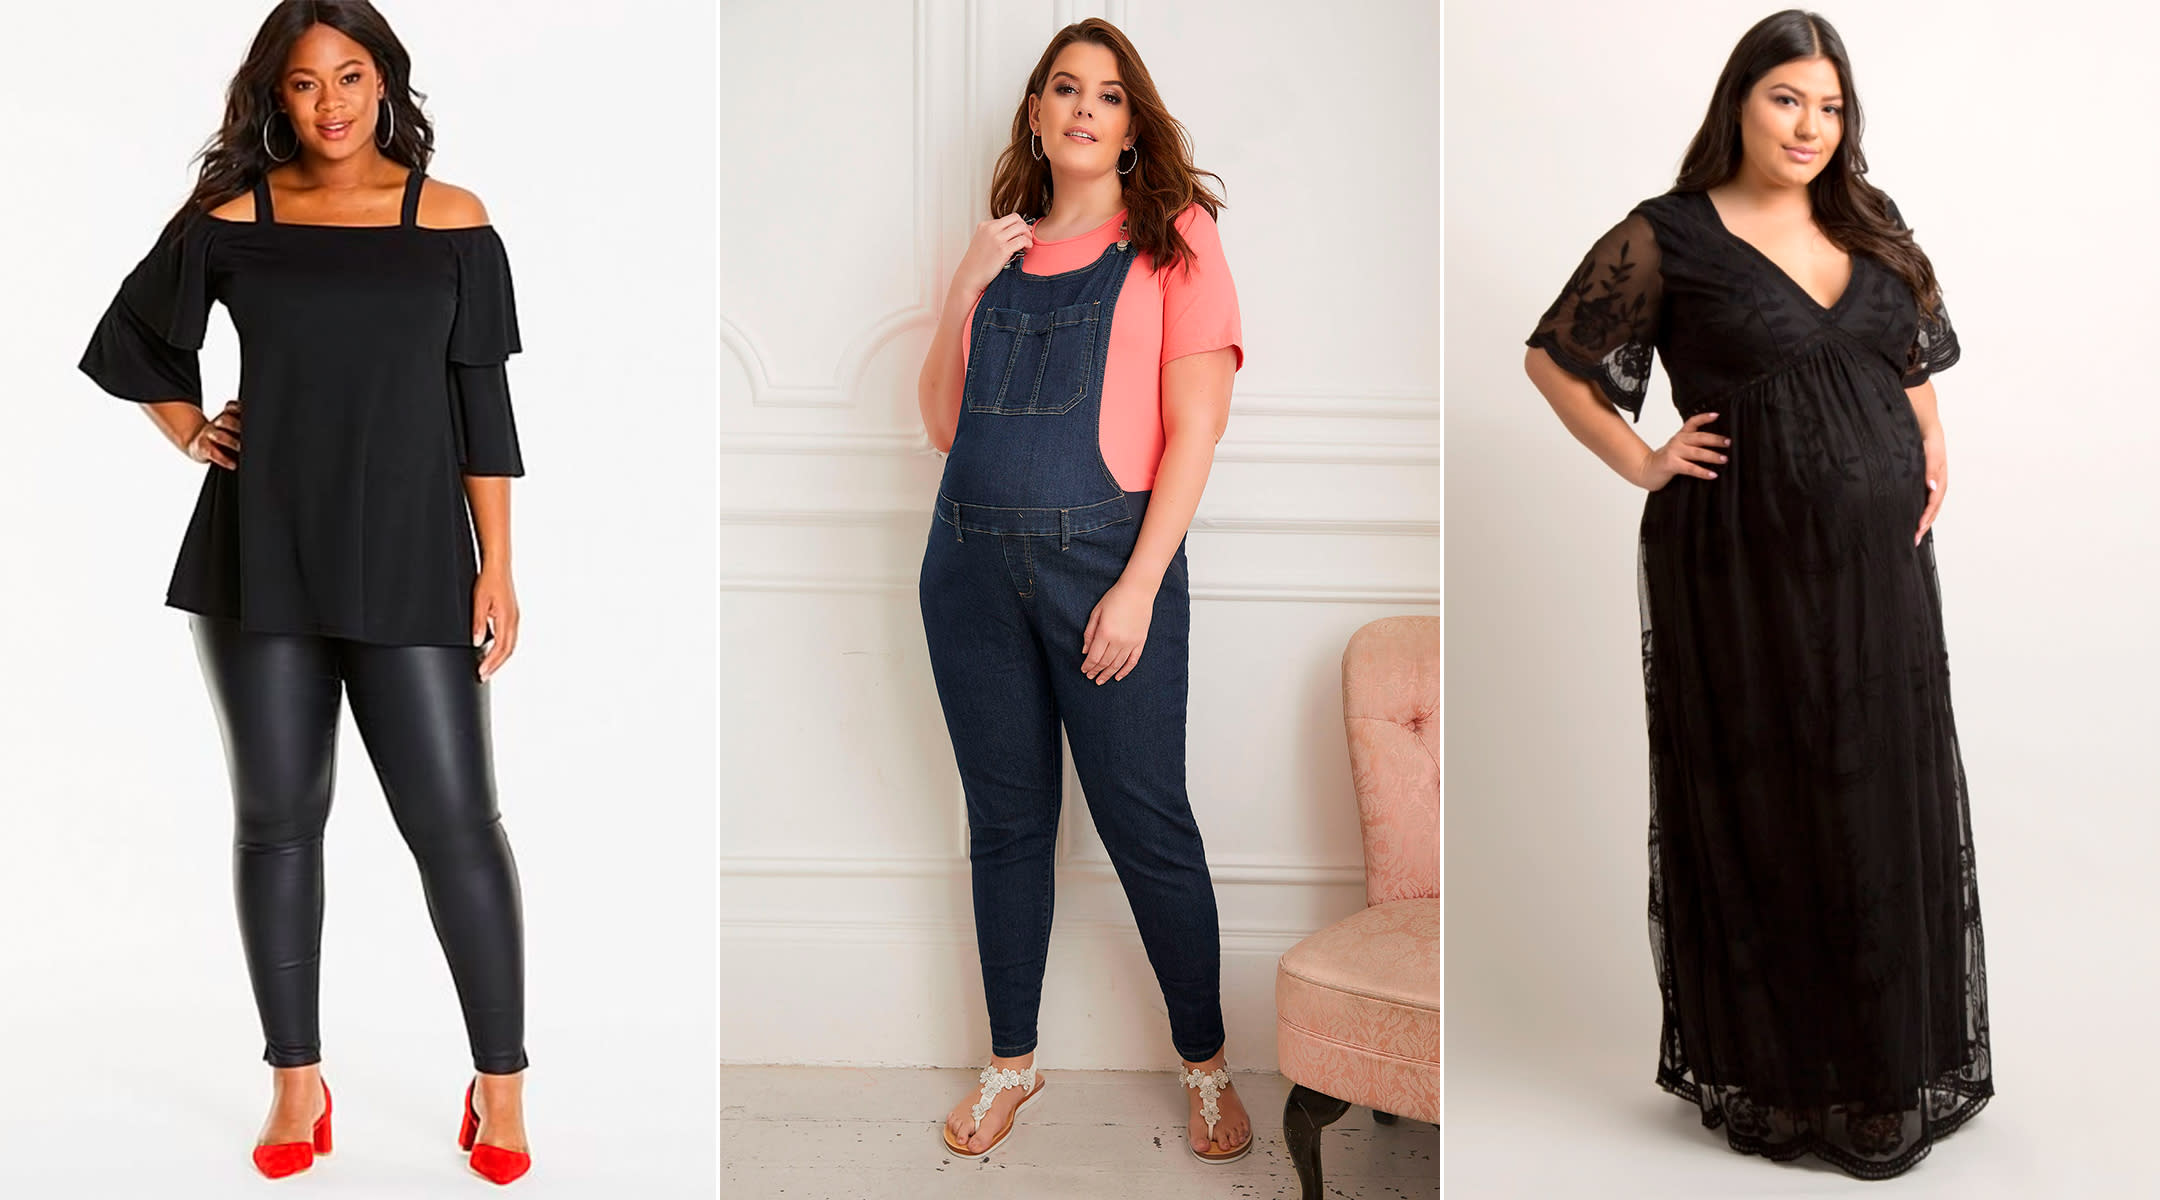 97439066003e0 Best Places to Shop for Plus-Size Maternity Clothes